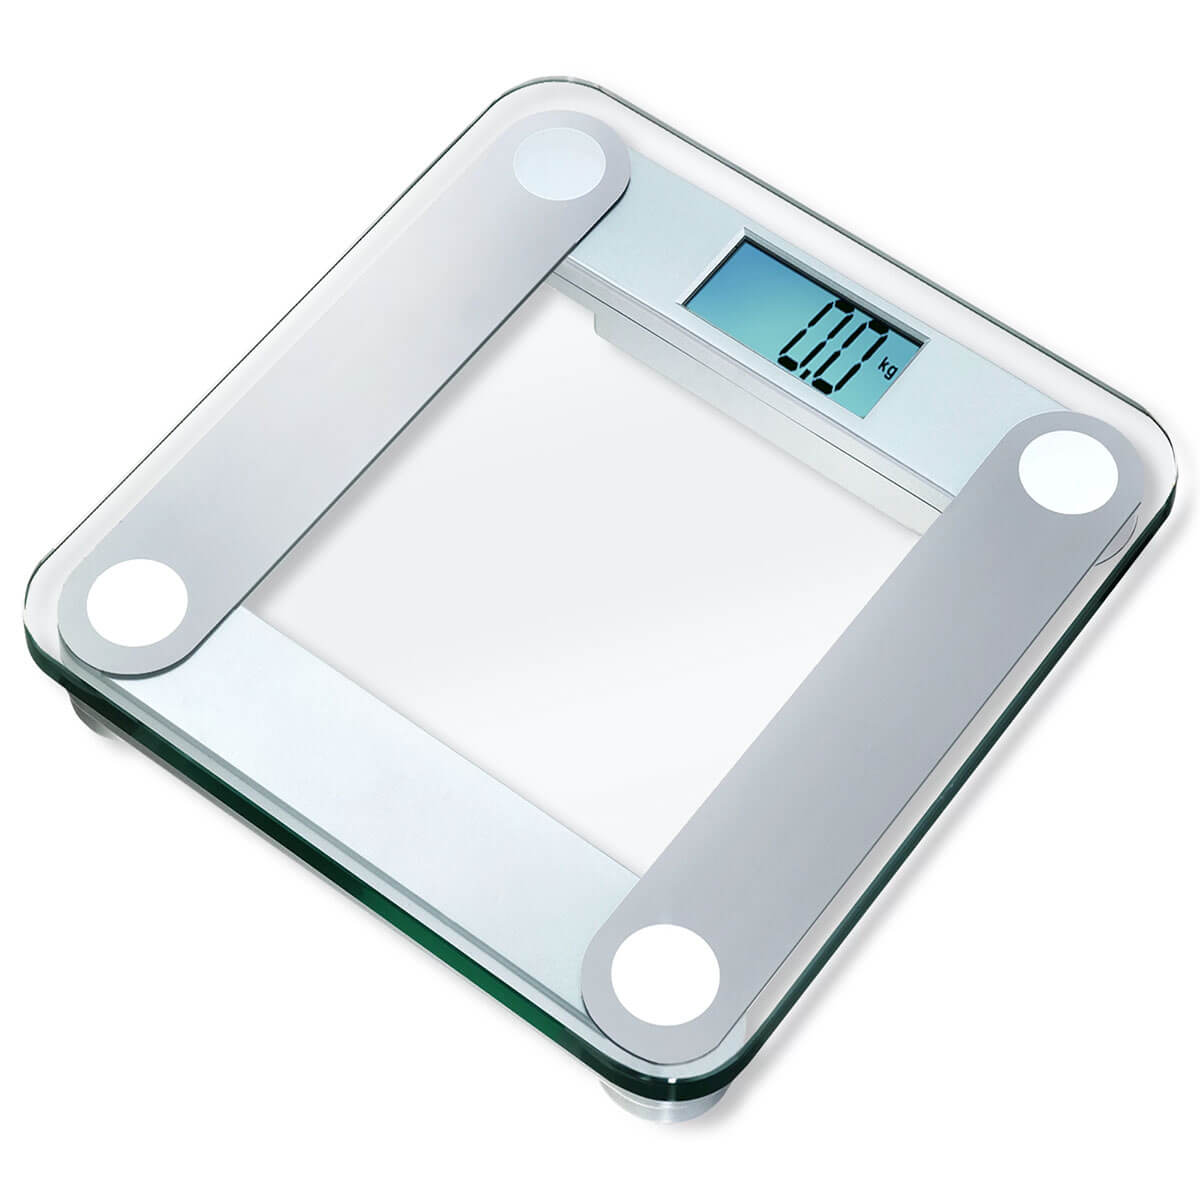 The digital bathroom scale is a strain gage-based load cell device